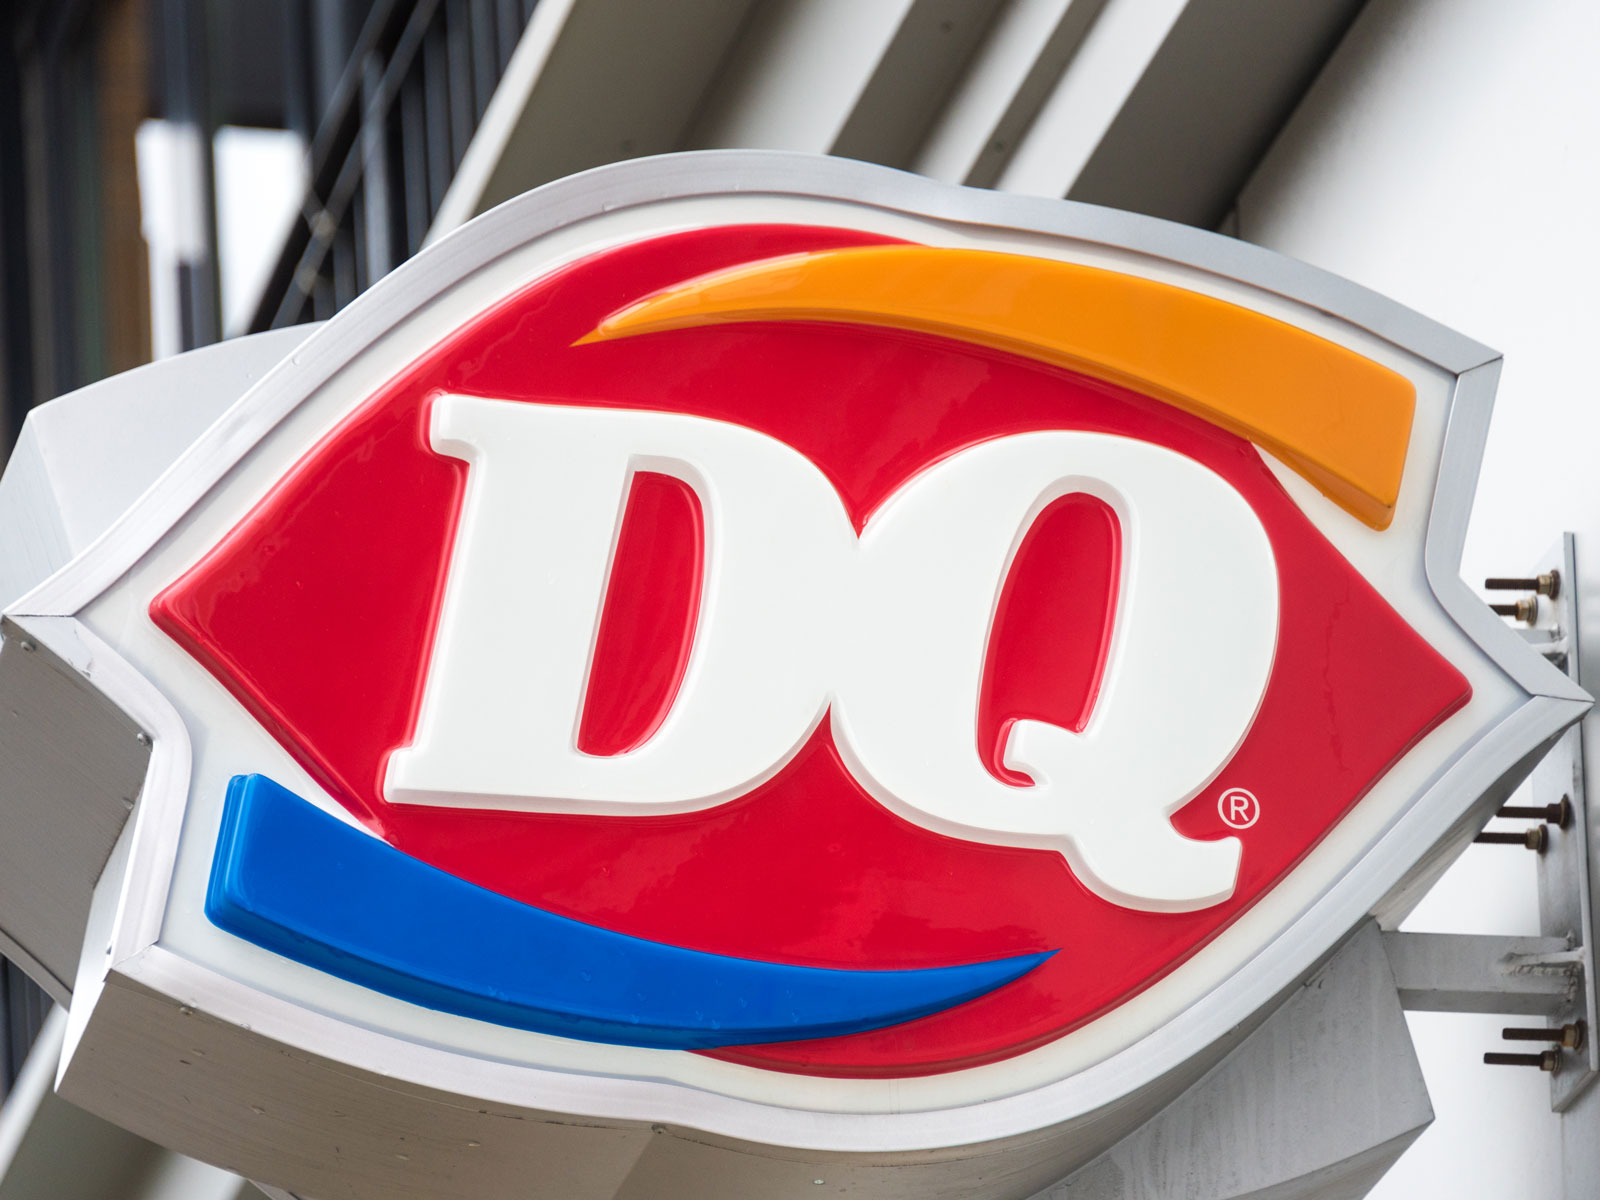 How to Get a Free Dairy Queen Sundae or Shake This Week